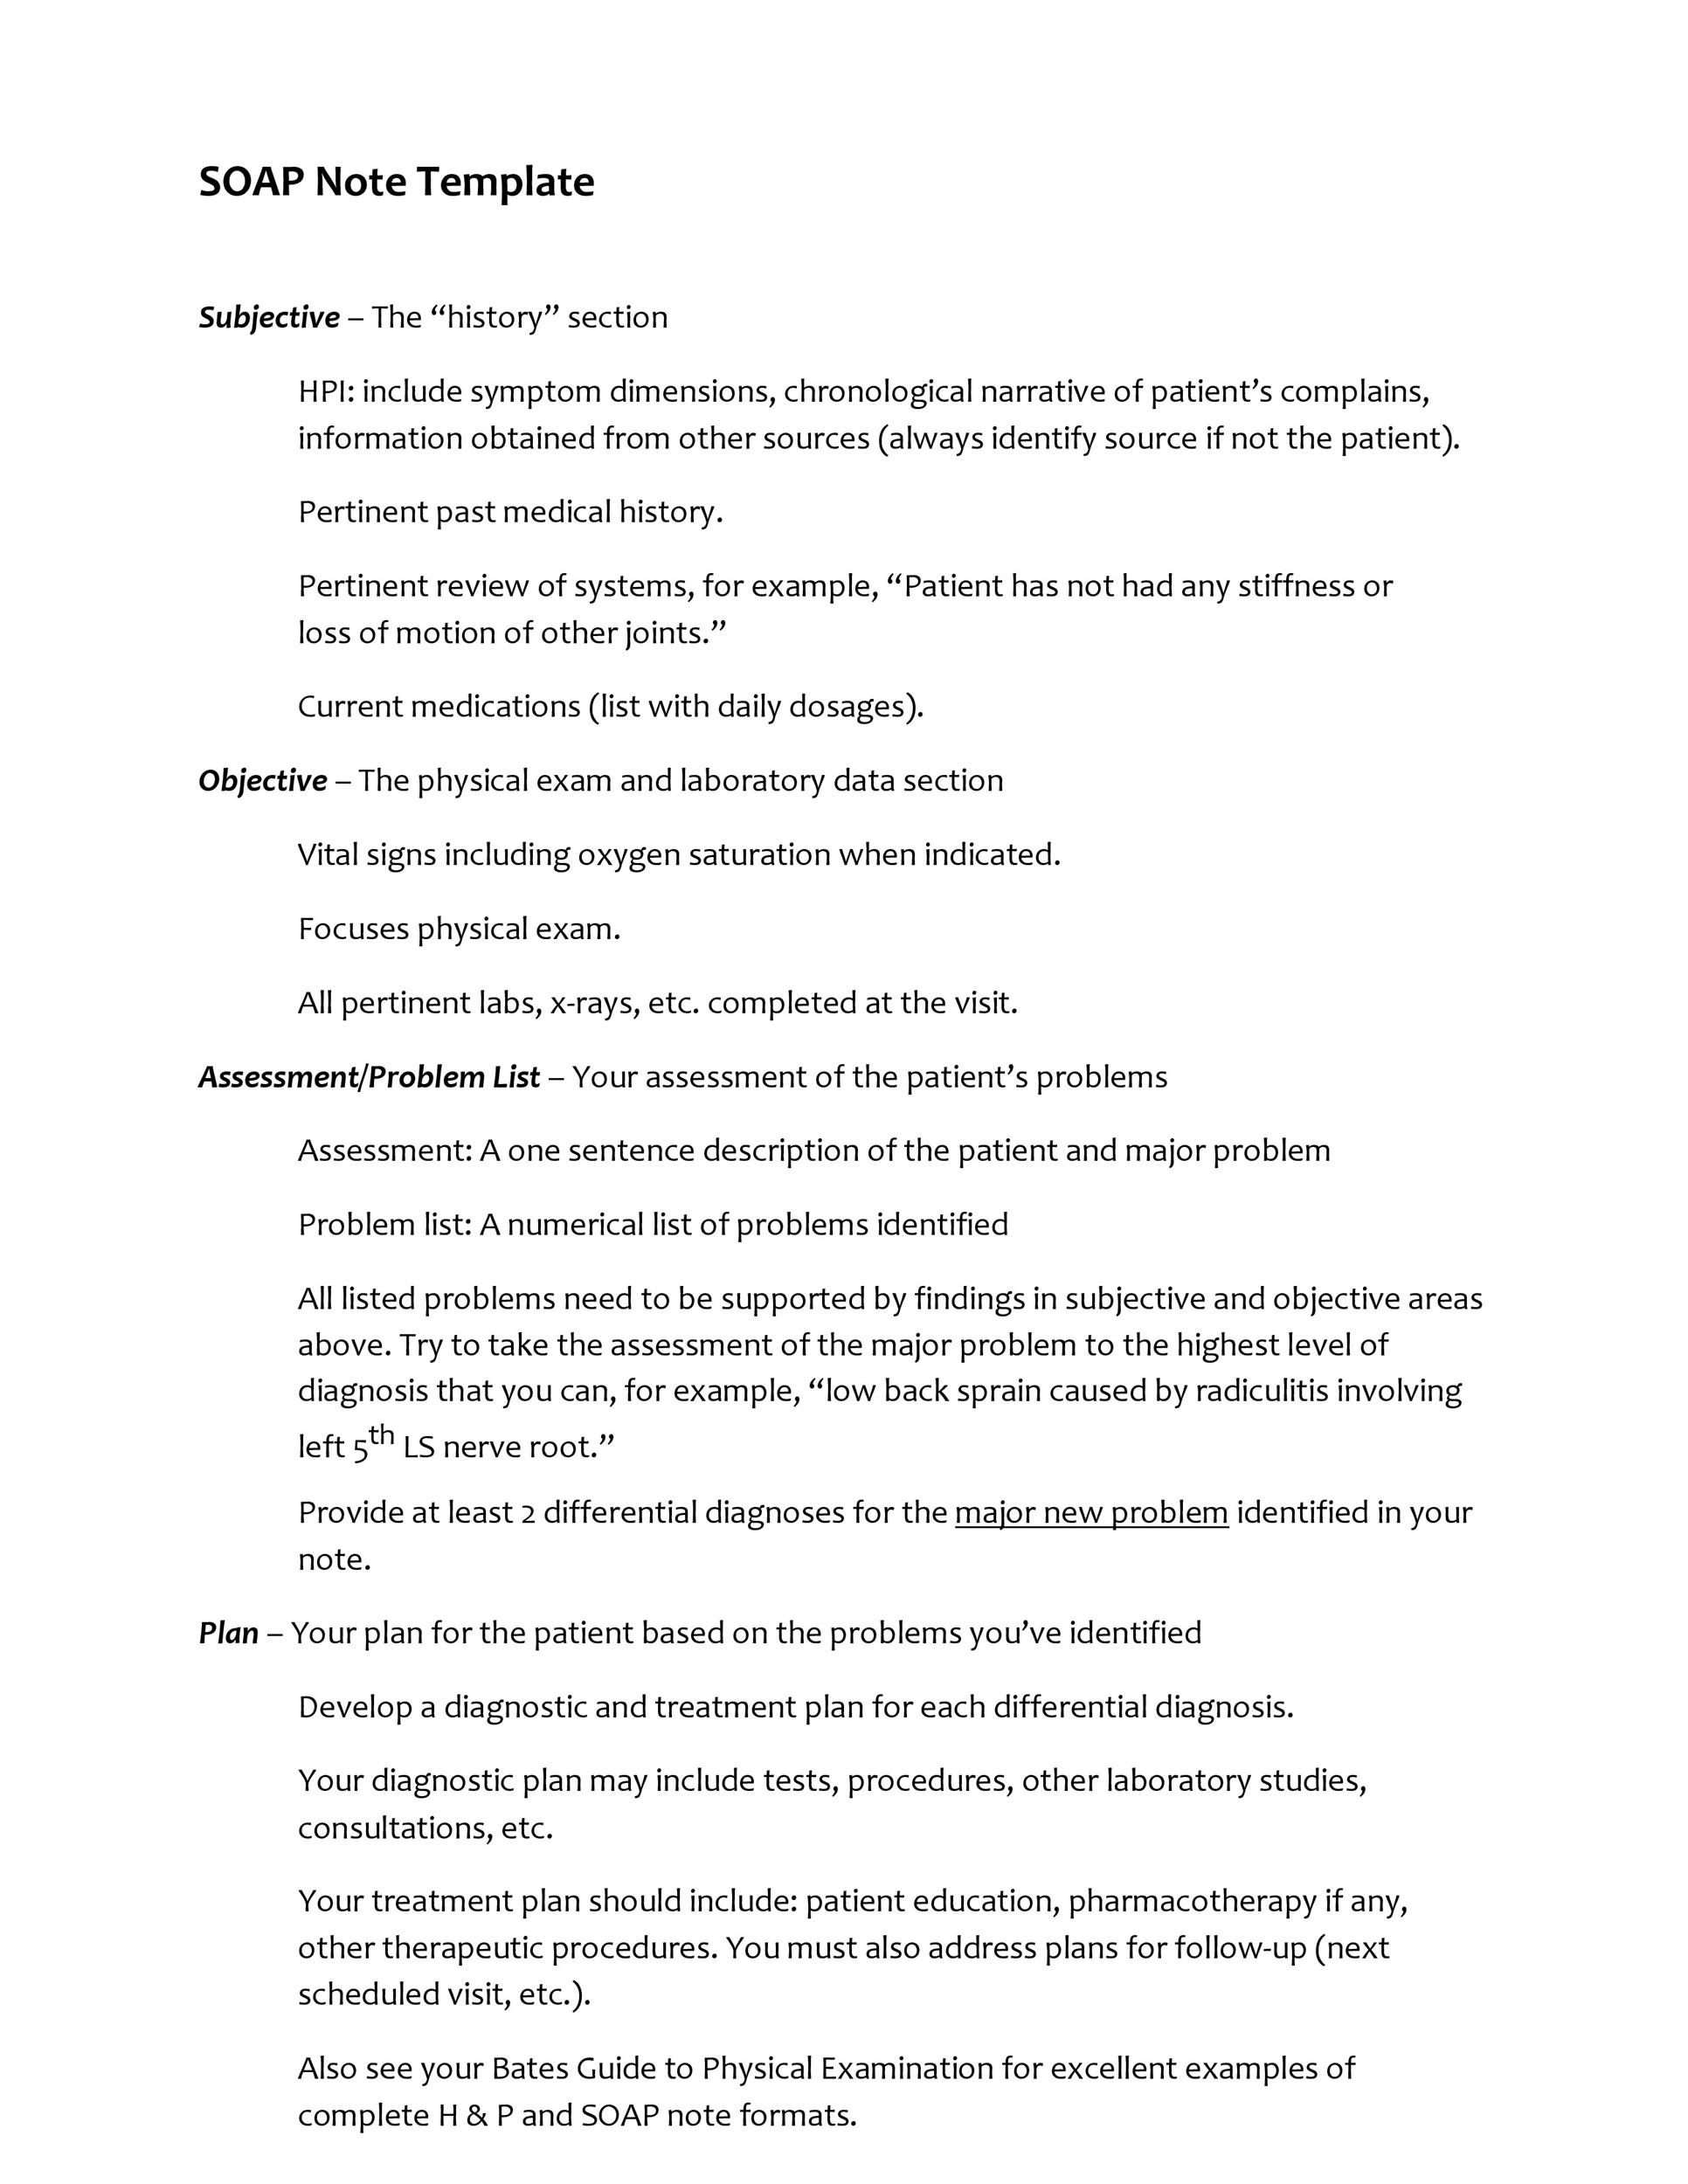 Soap Note Template 01